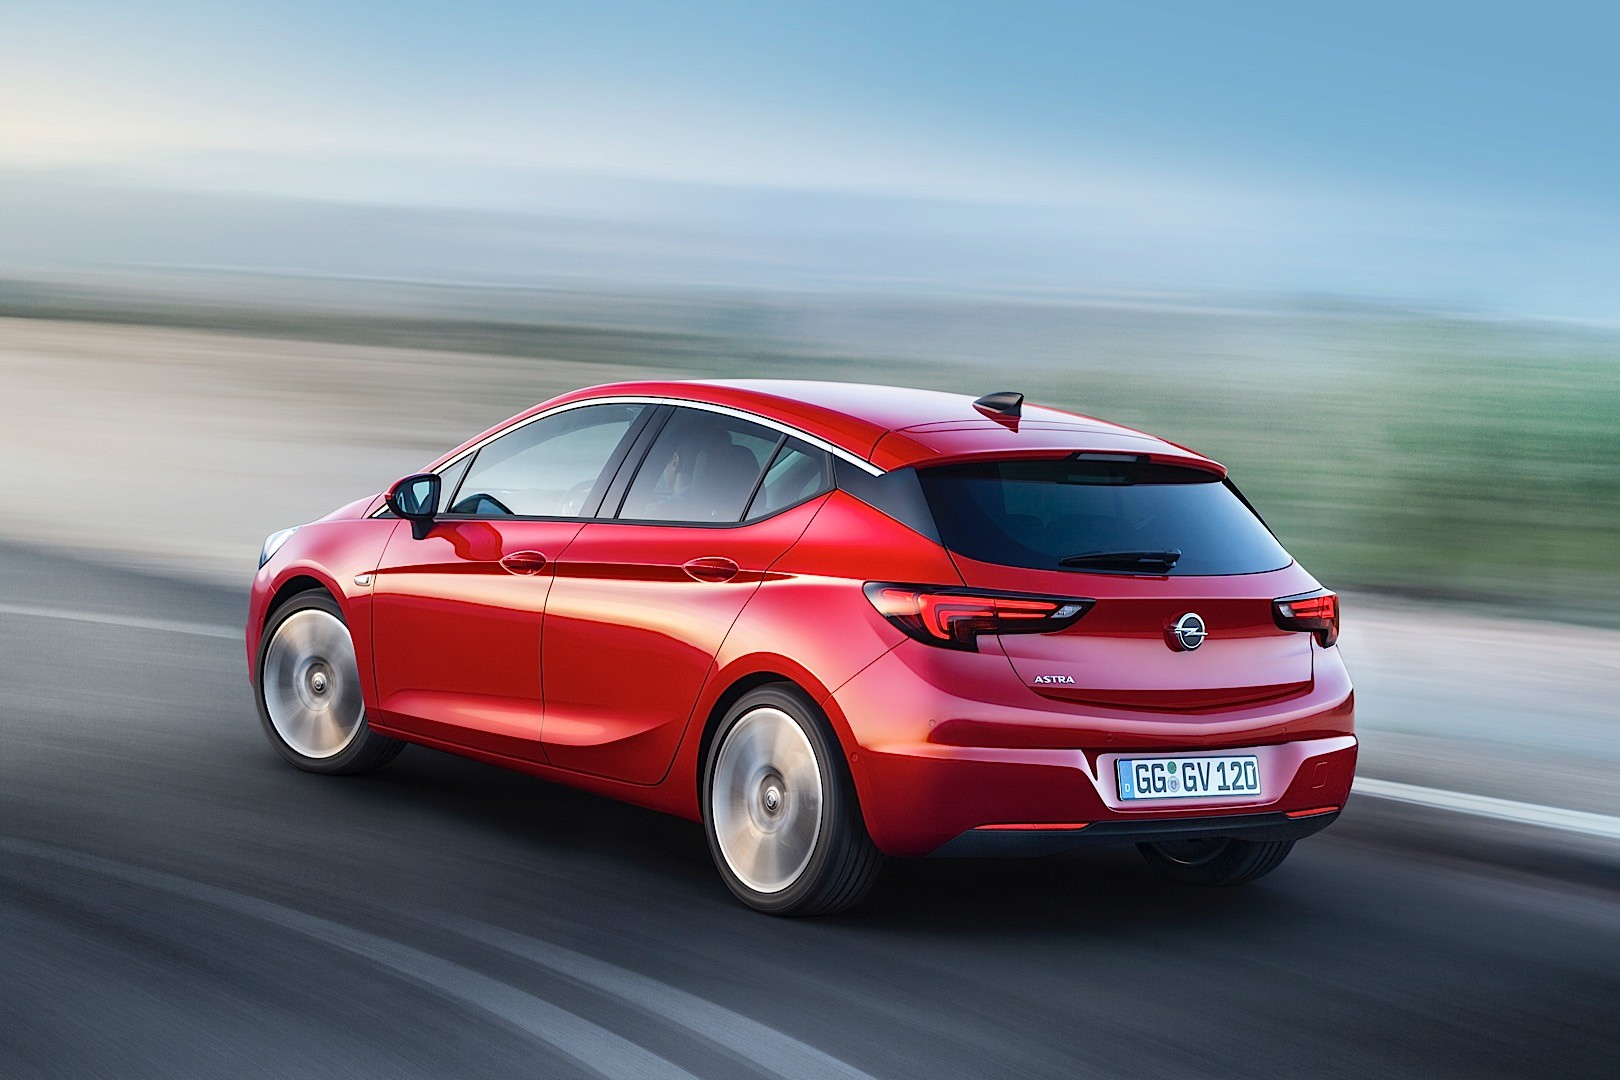 2015 Opel Astra Price 17 960 For The 1 Liter Ecotec